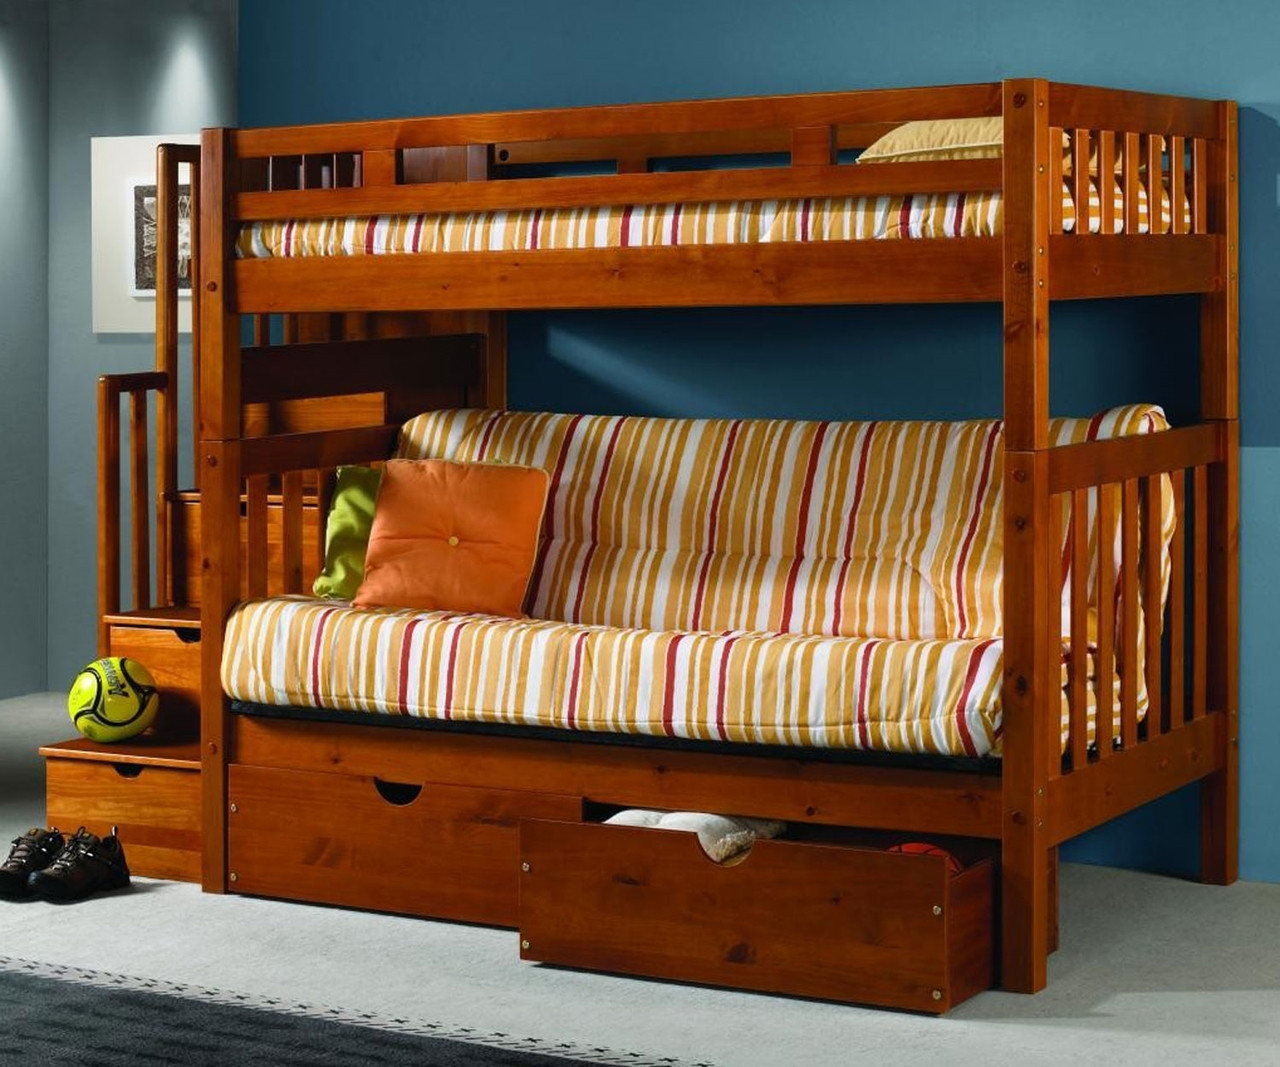 Picture of: Donco Trading Mission Stairway Futon Bunk Bed 200 Abcdefgh 300 Solid Wood Bunk Bed Donco Furniture